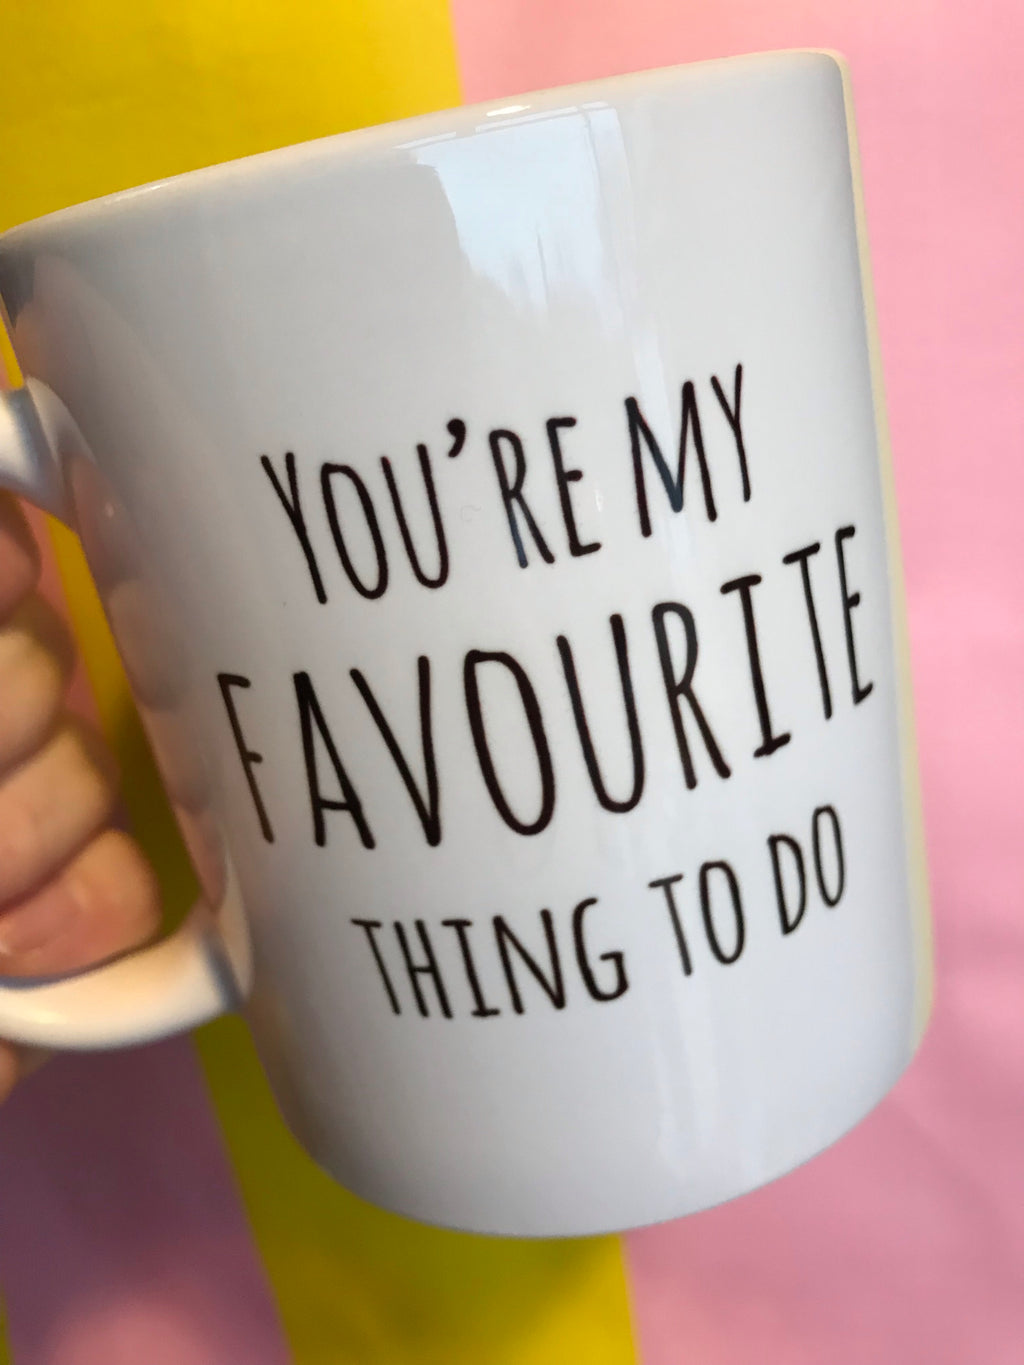 My Favourite Thing To Do Mug#